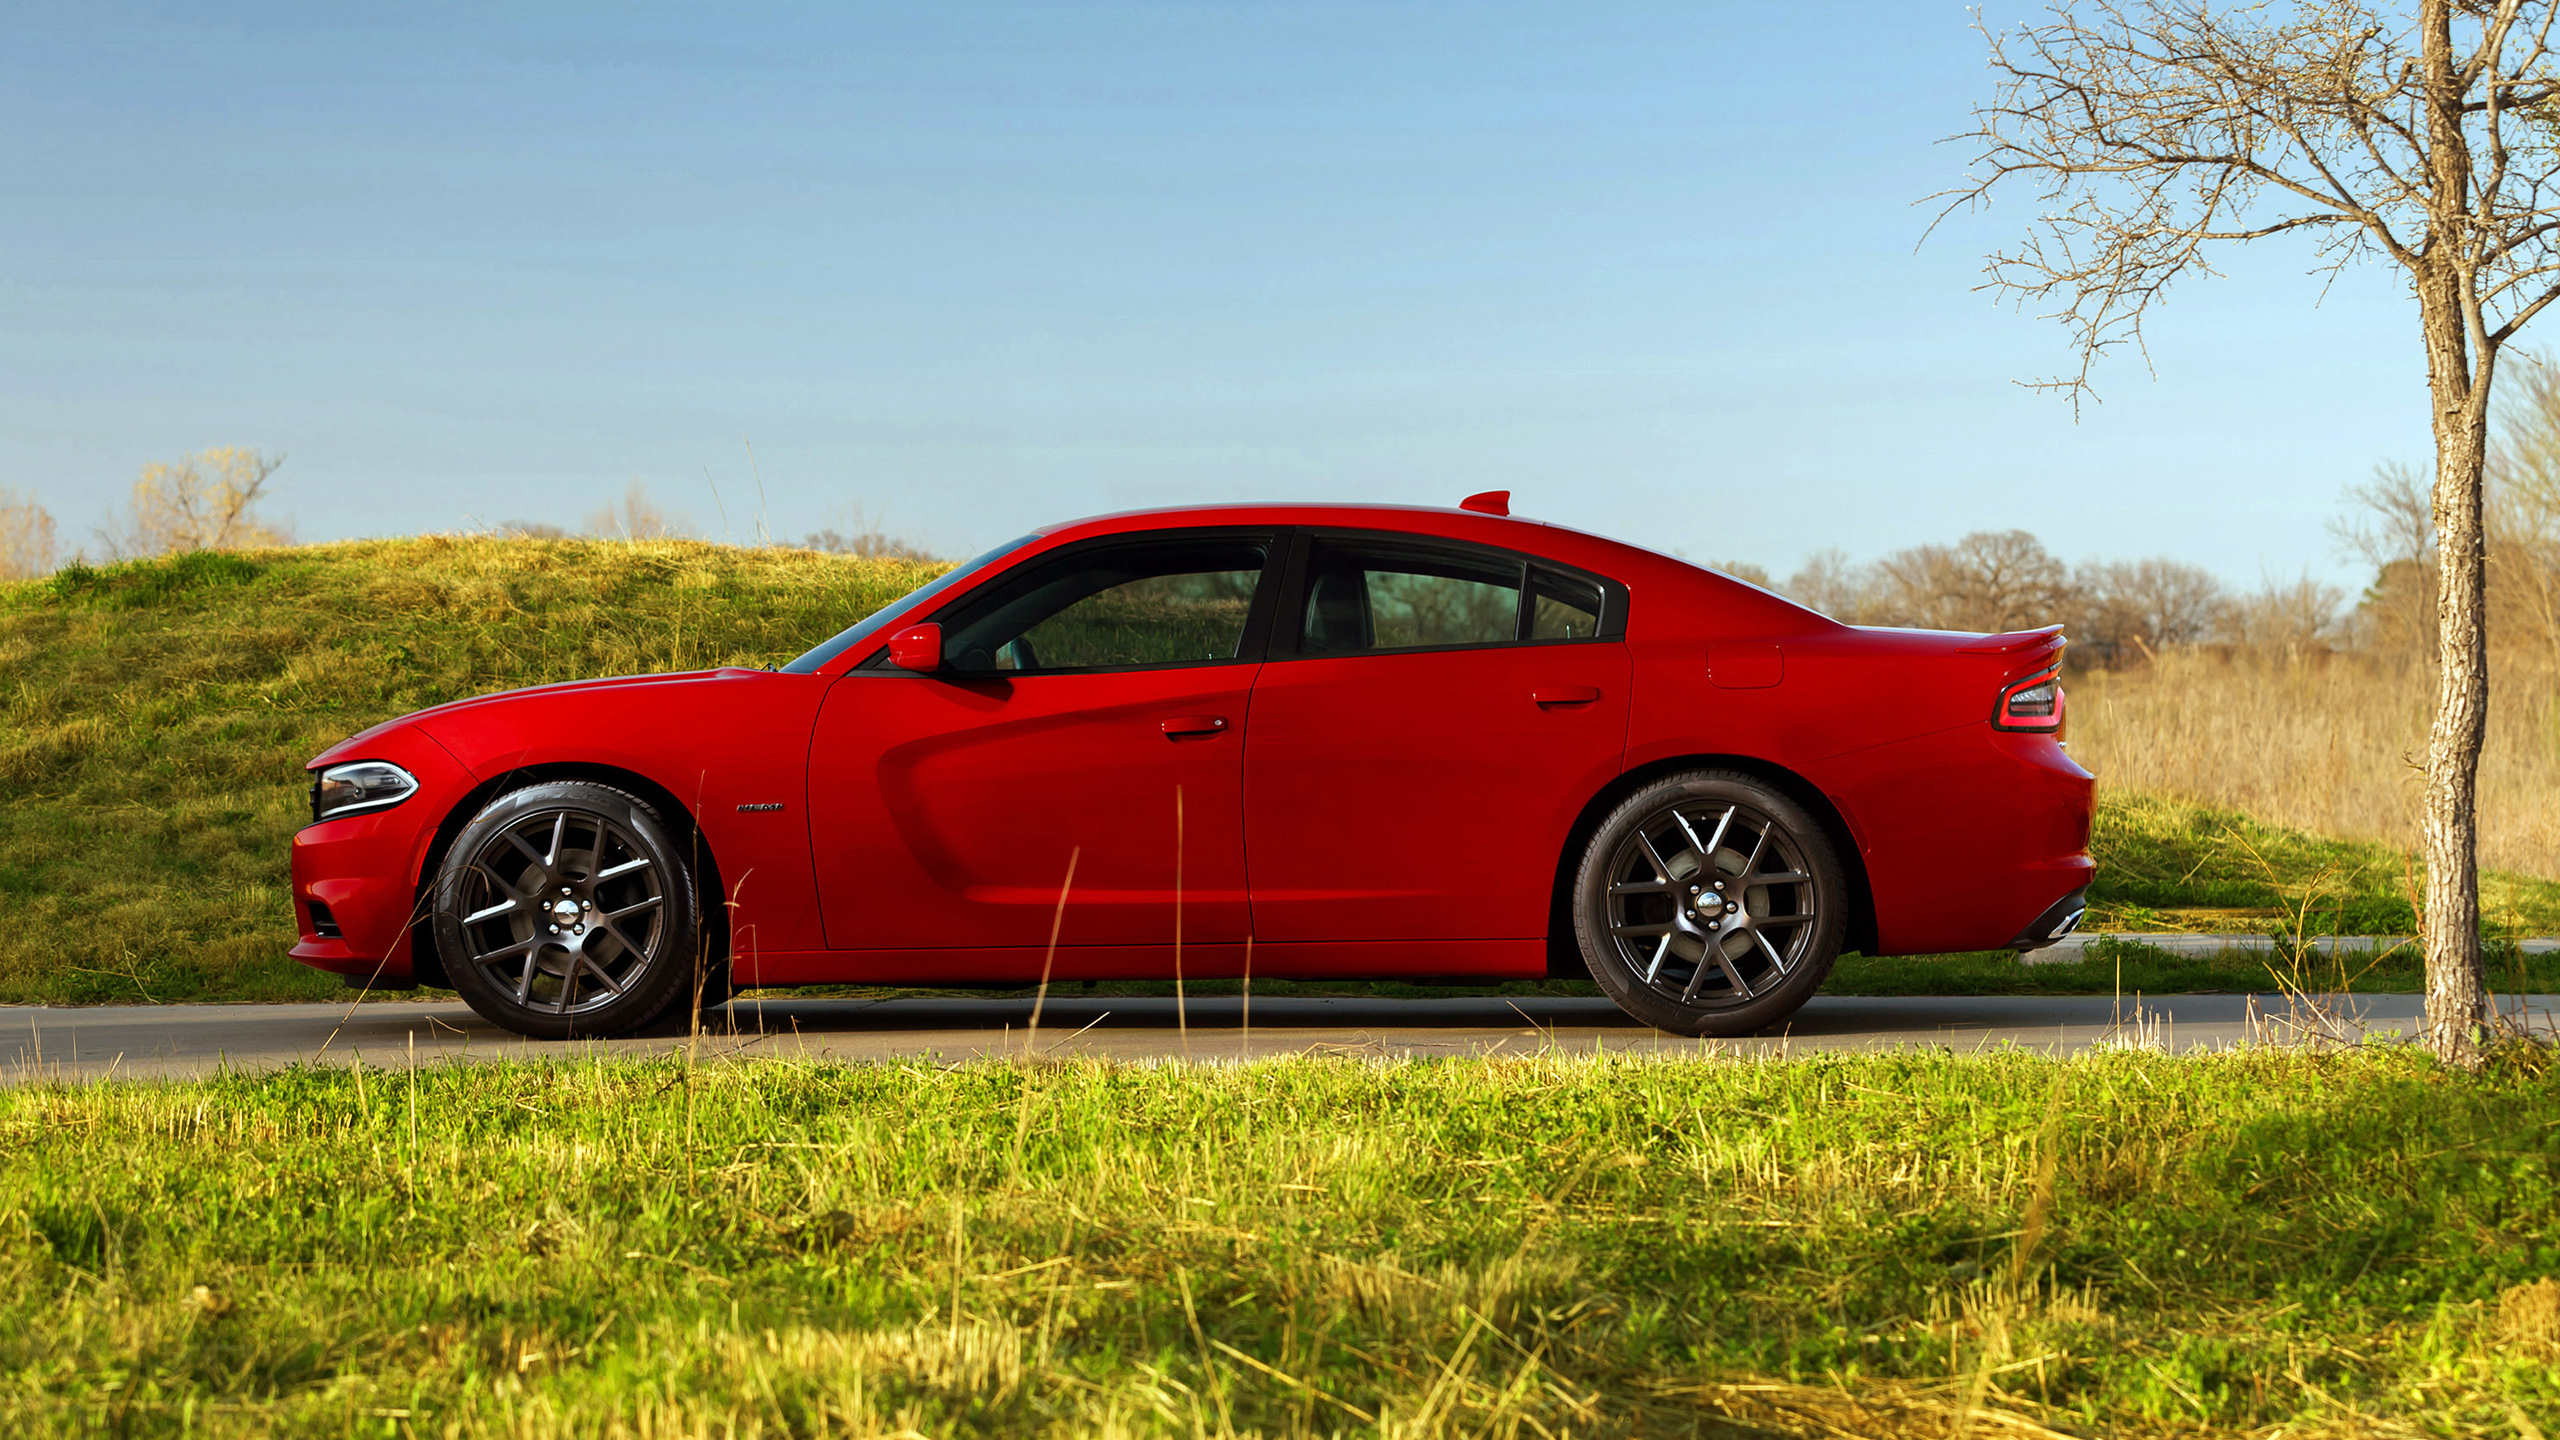 2015 Dodge Charger Rt Wallpaper Hd Car Wallpapers Id 4483